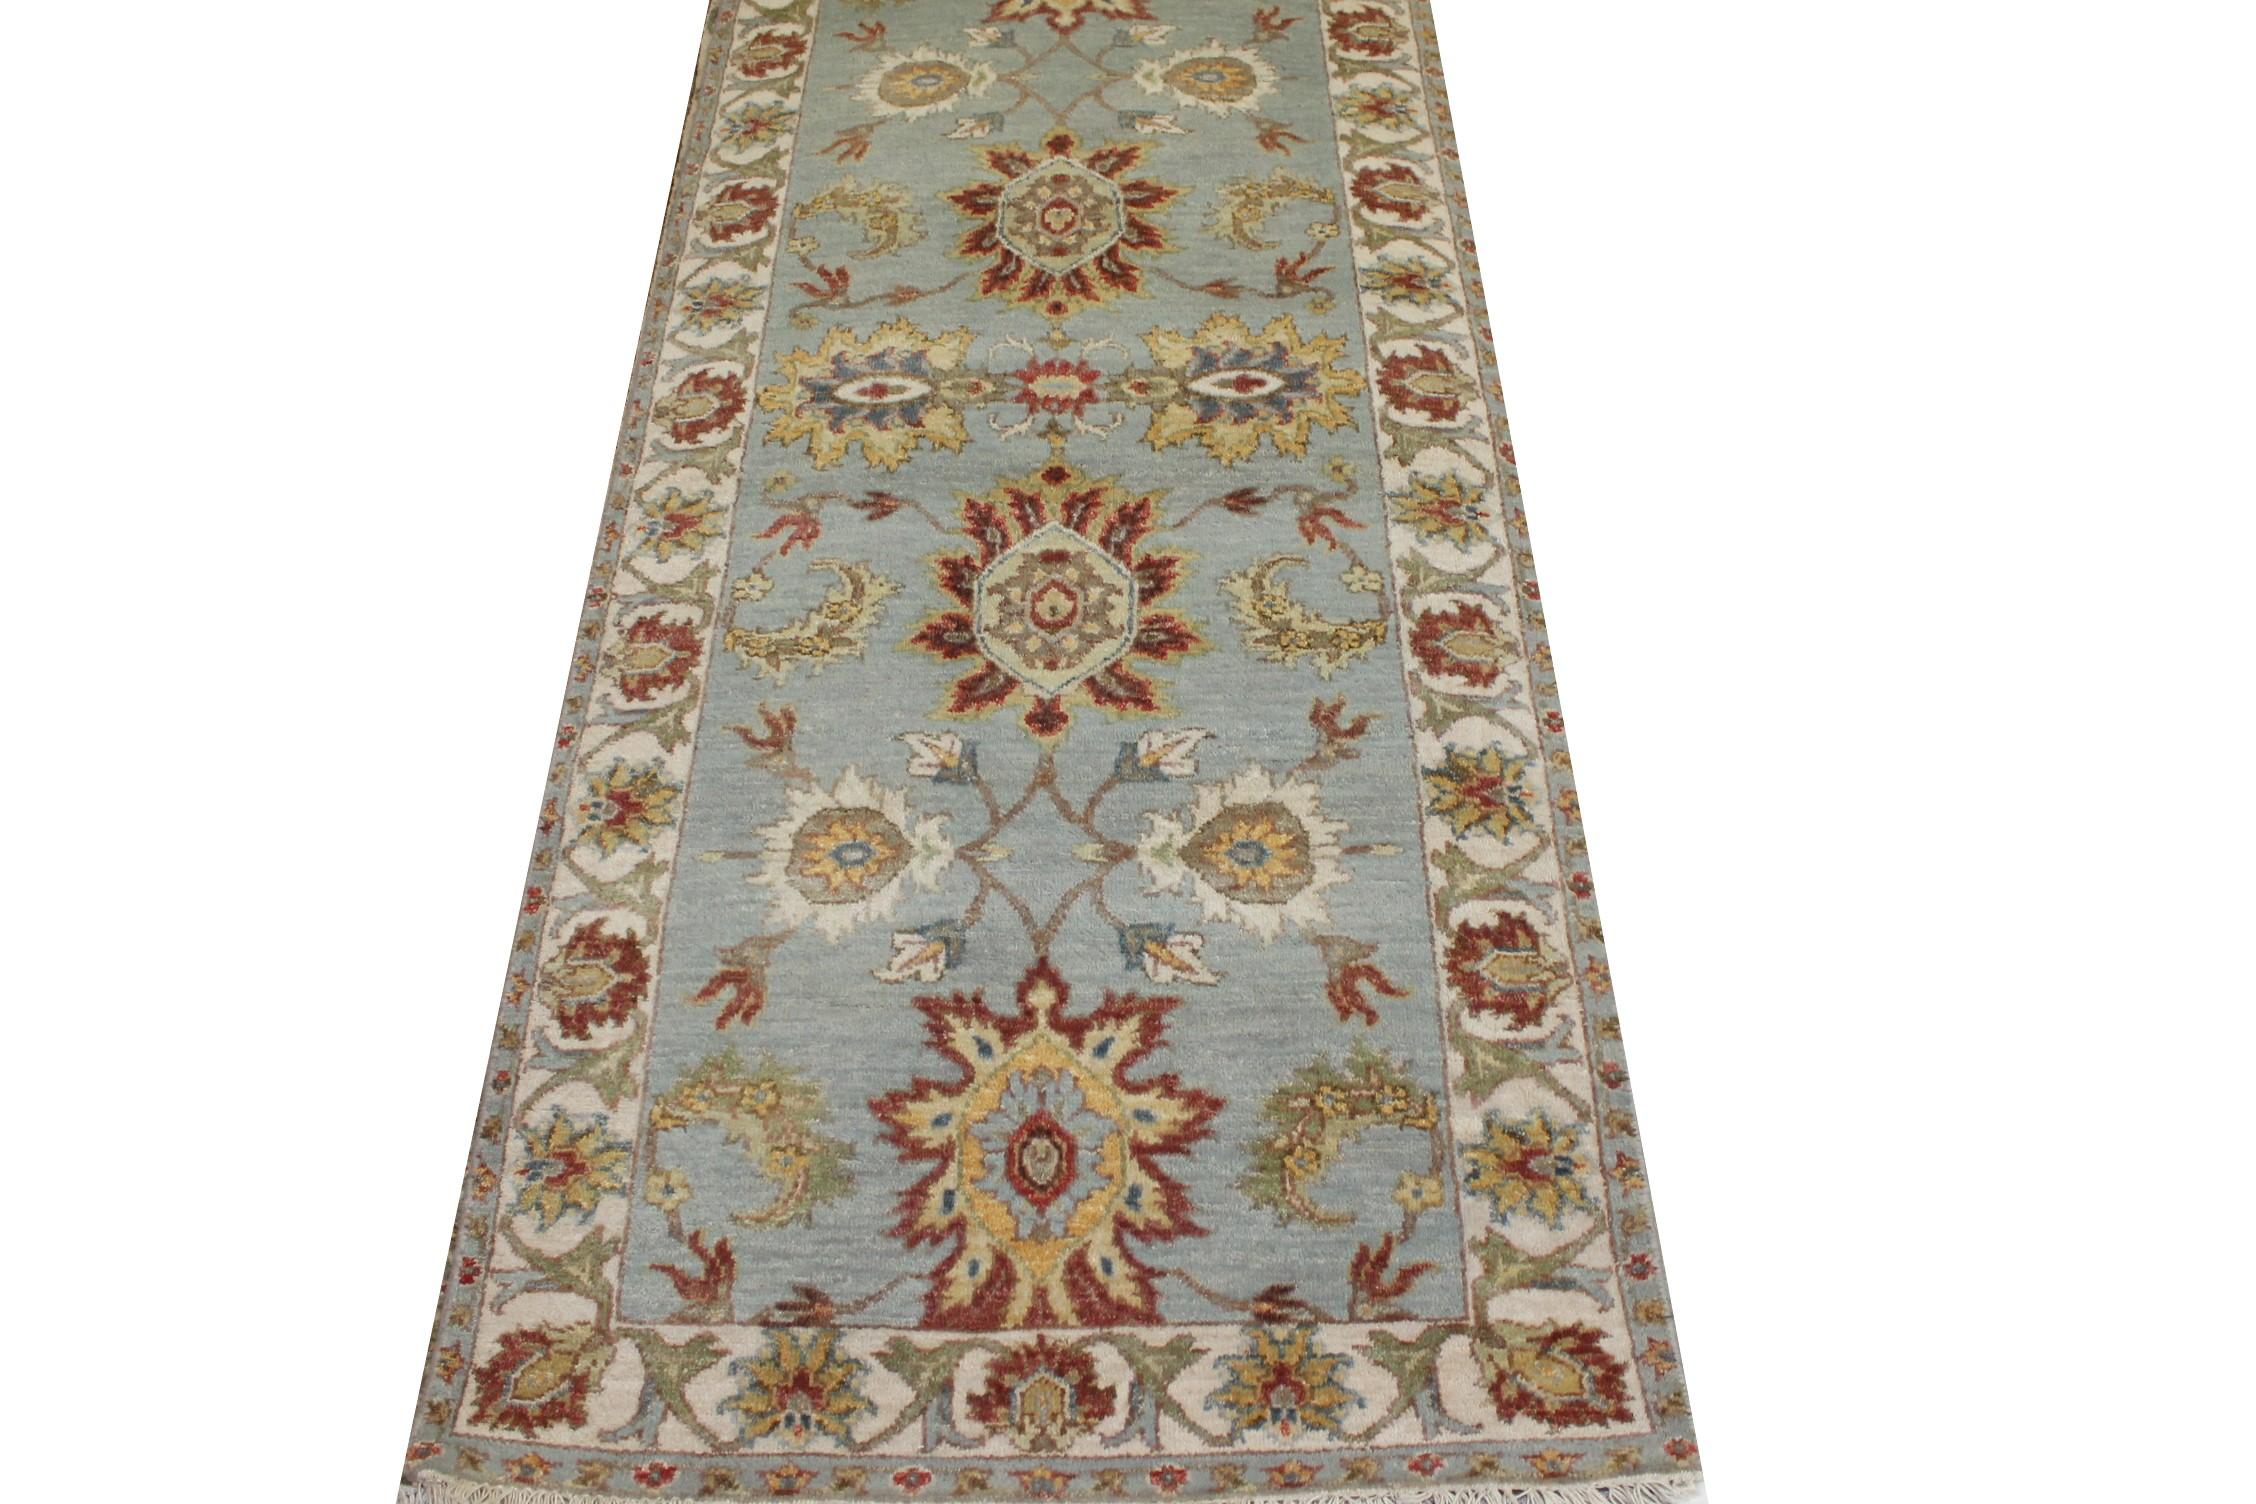 6 ft. Runner Traditional Hand Knotted Wool Area Rug - MR023678